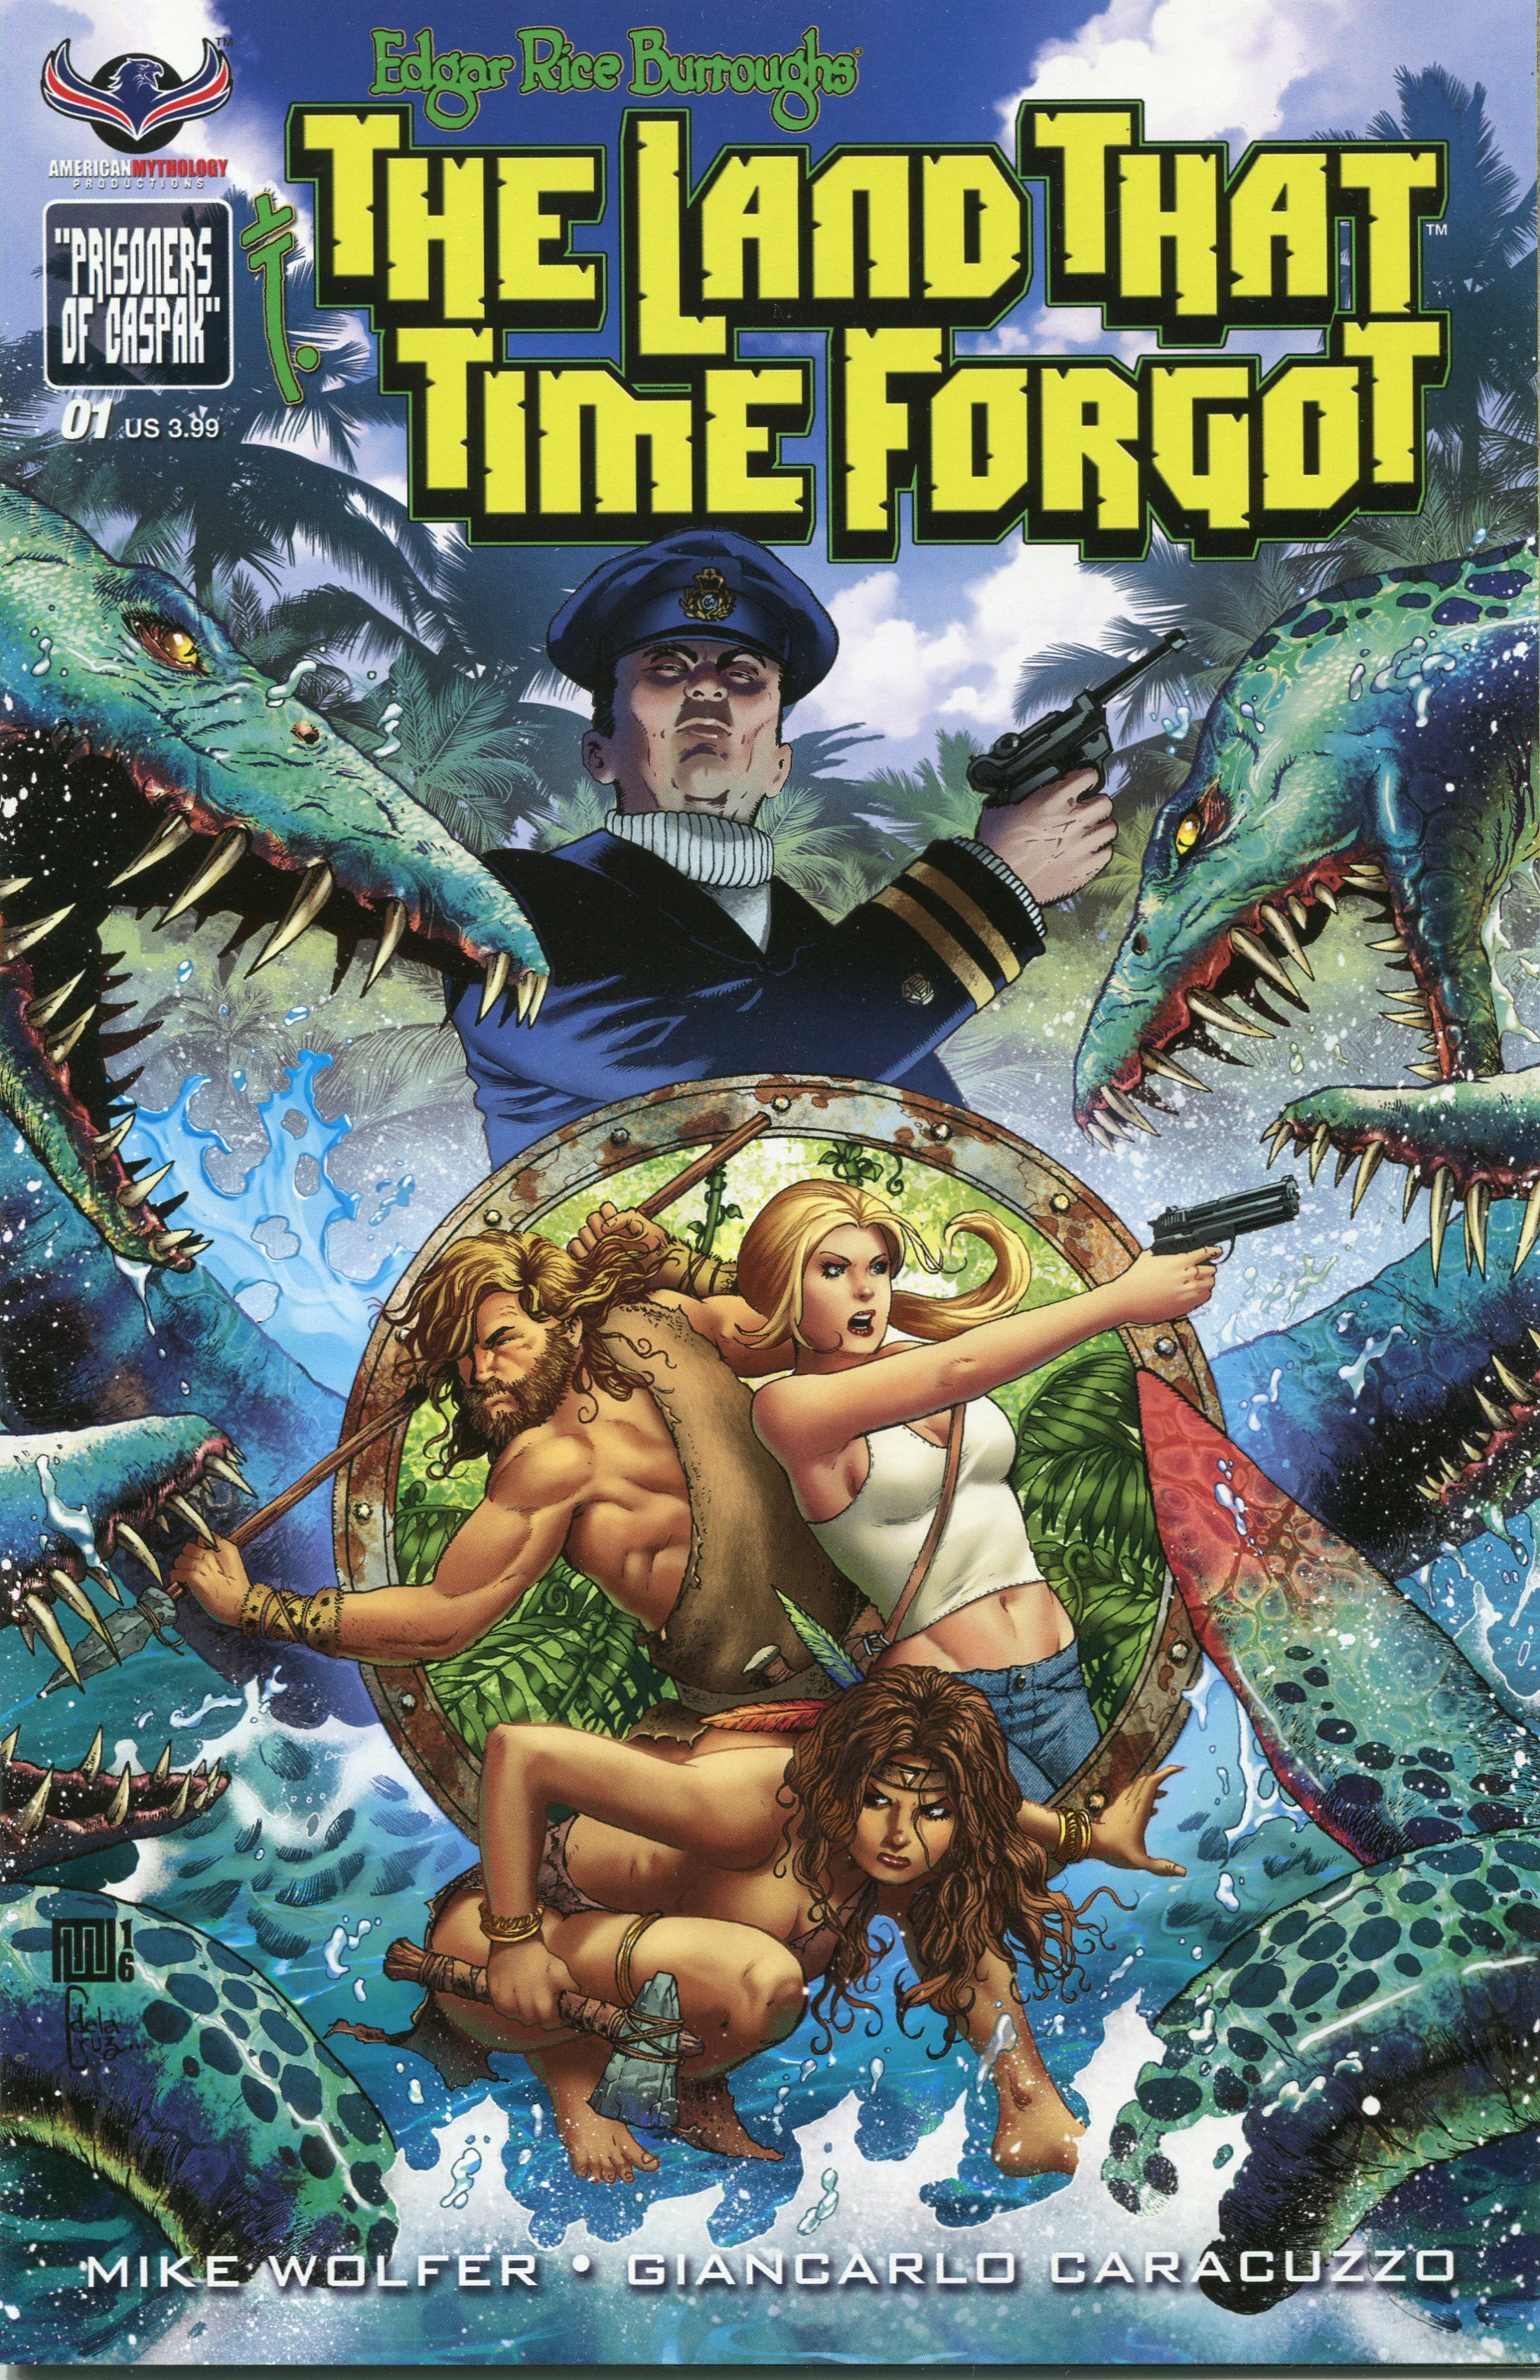 Edgar Rice Burroughs The Land That Time Forgot issue 1 - Page 1